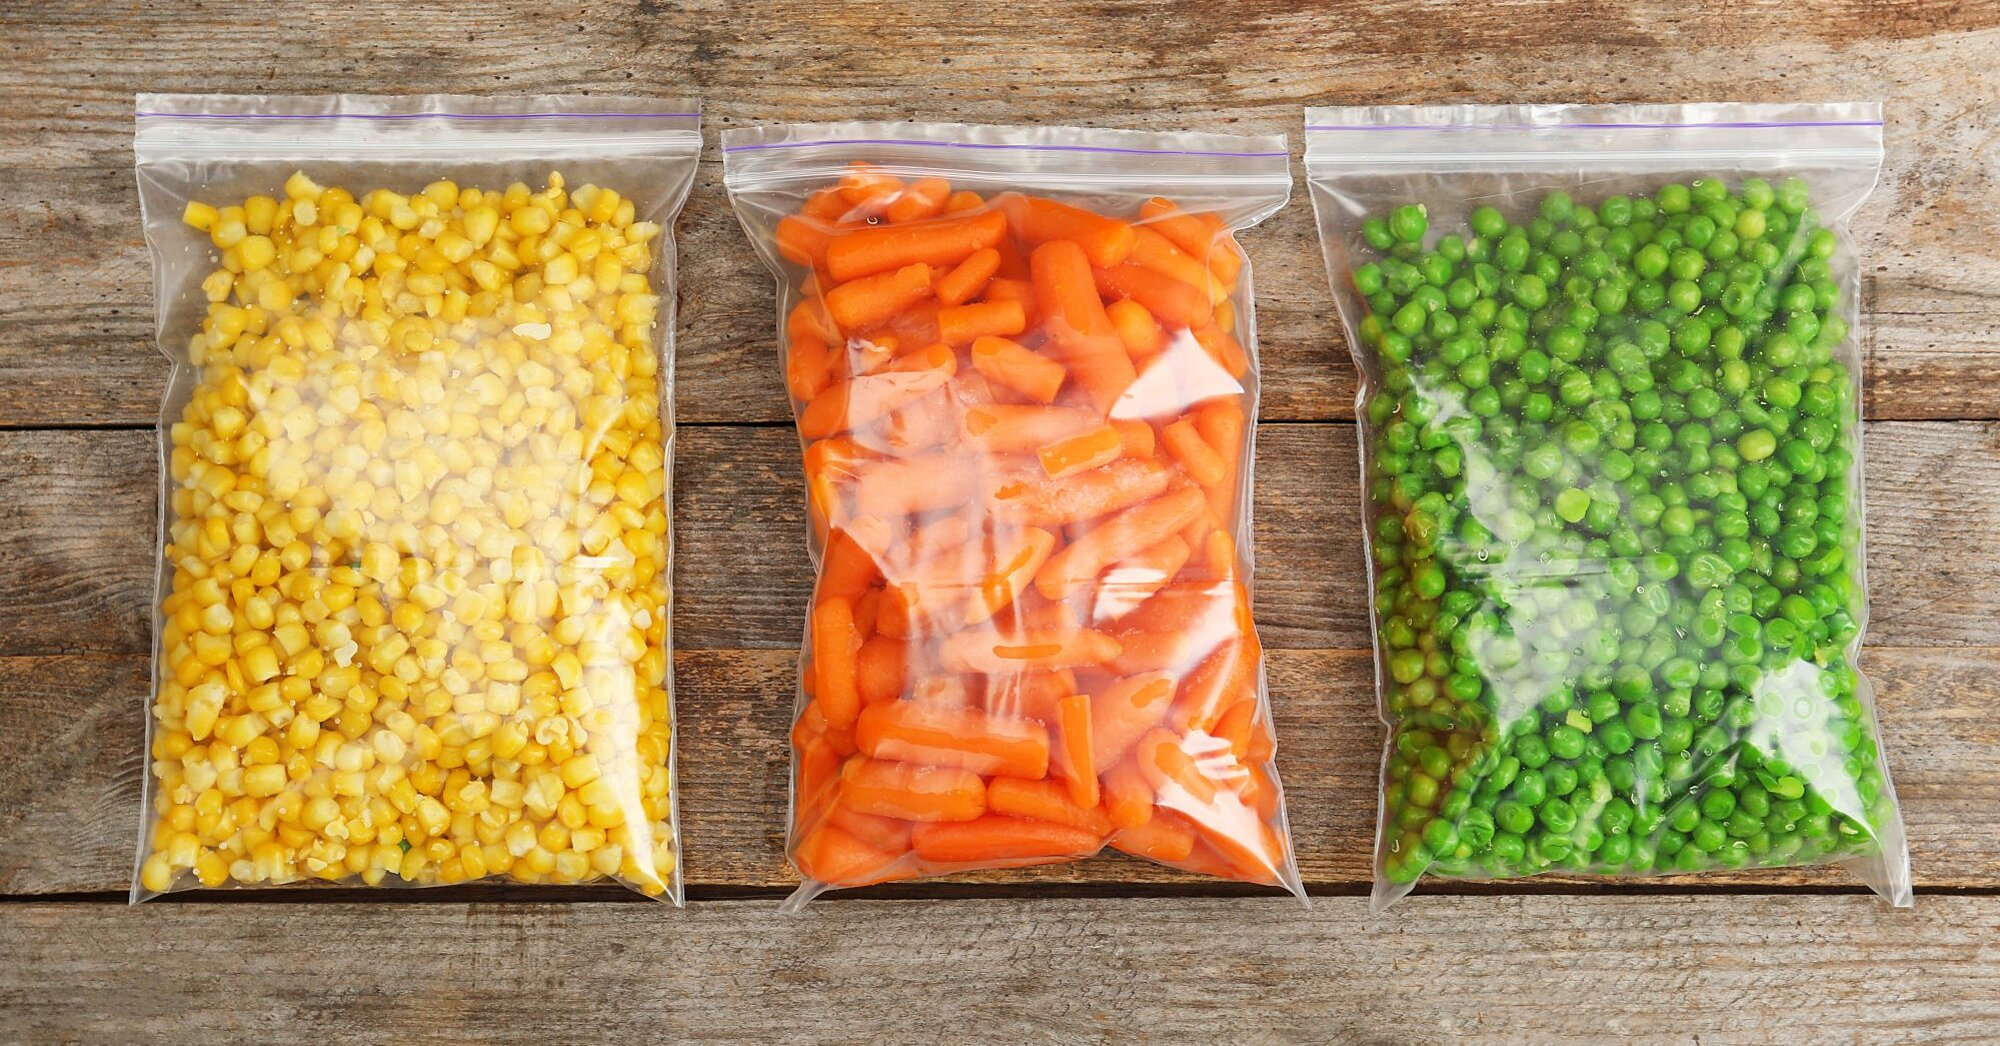 9 Tricks for Freezing Food That'll Make Meal Prep a Snap